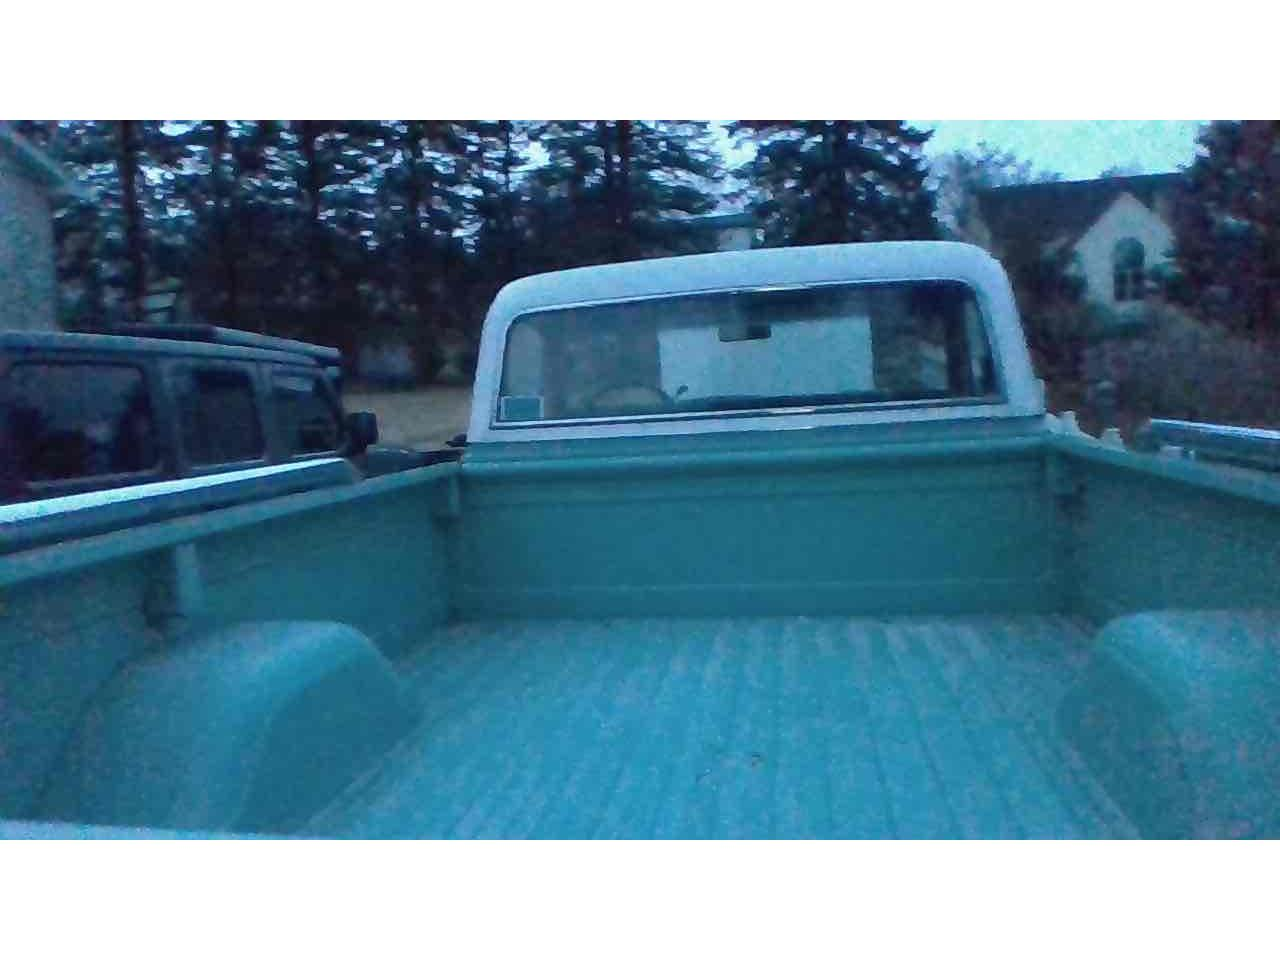 1971 Chevrolet 1/2 Ton Pickup for sale in Red Lion, PA – photo 2